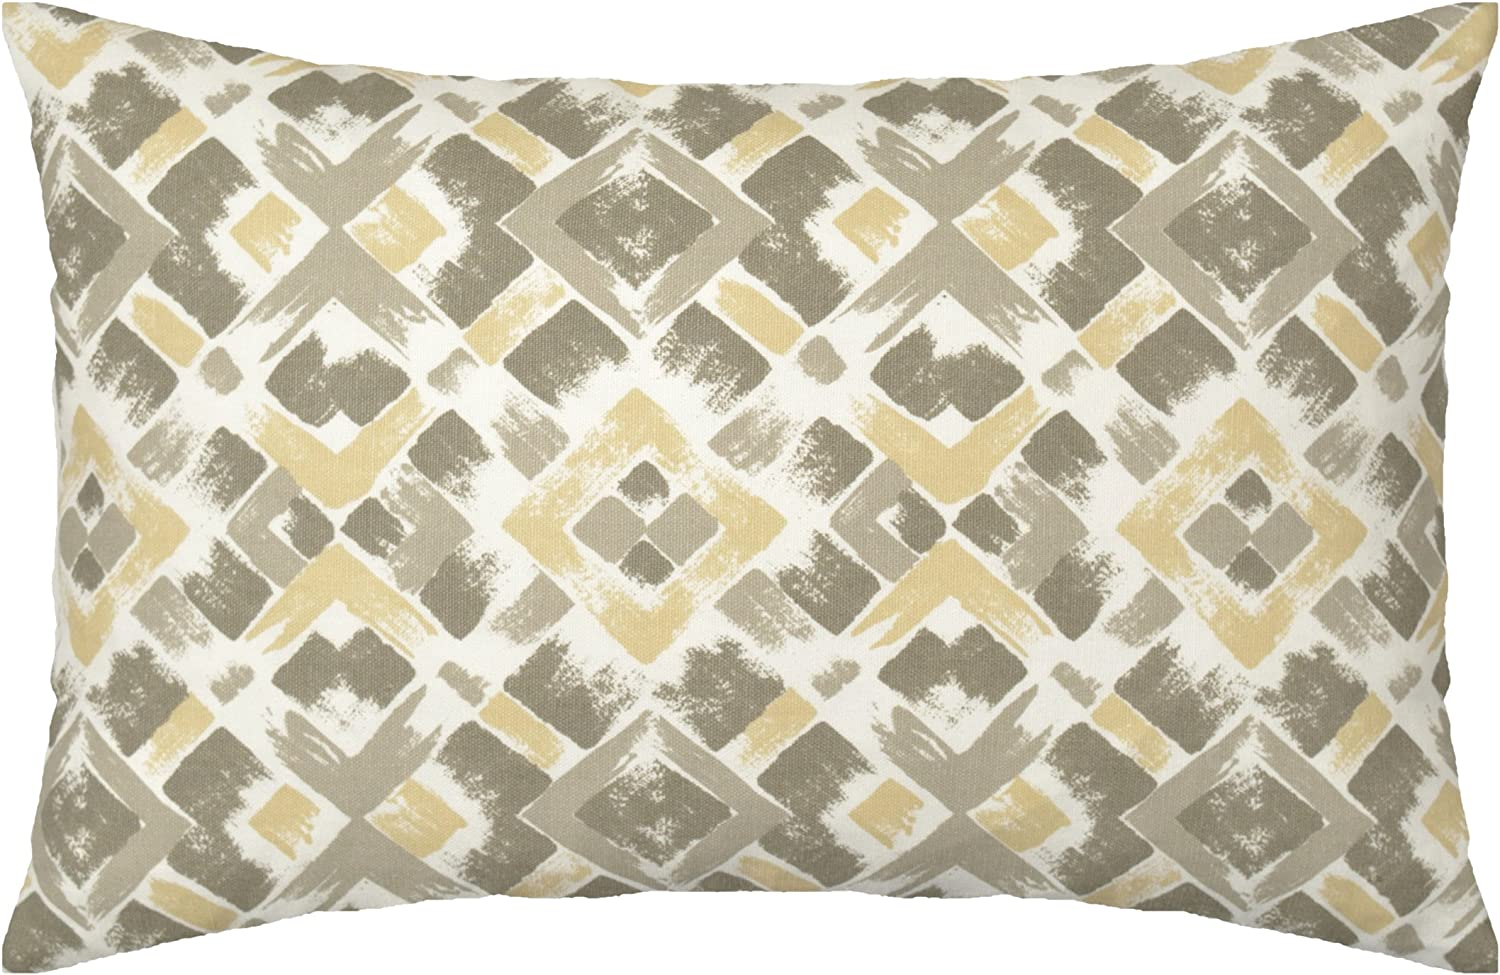 Square 18 x 18 Solid 1 Cover Brown JinStyles Accent Decorative Throw Pillow Cover